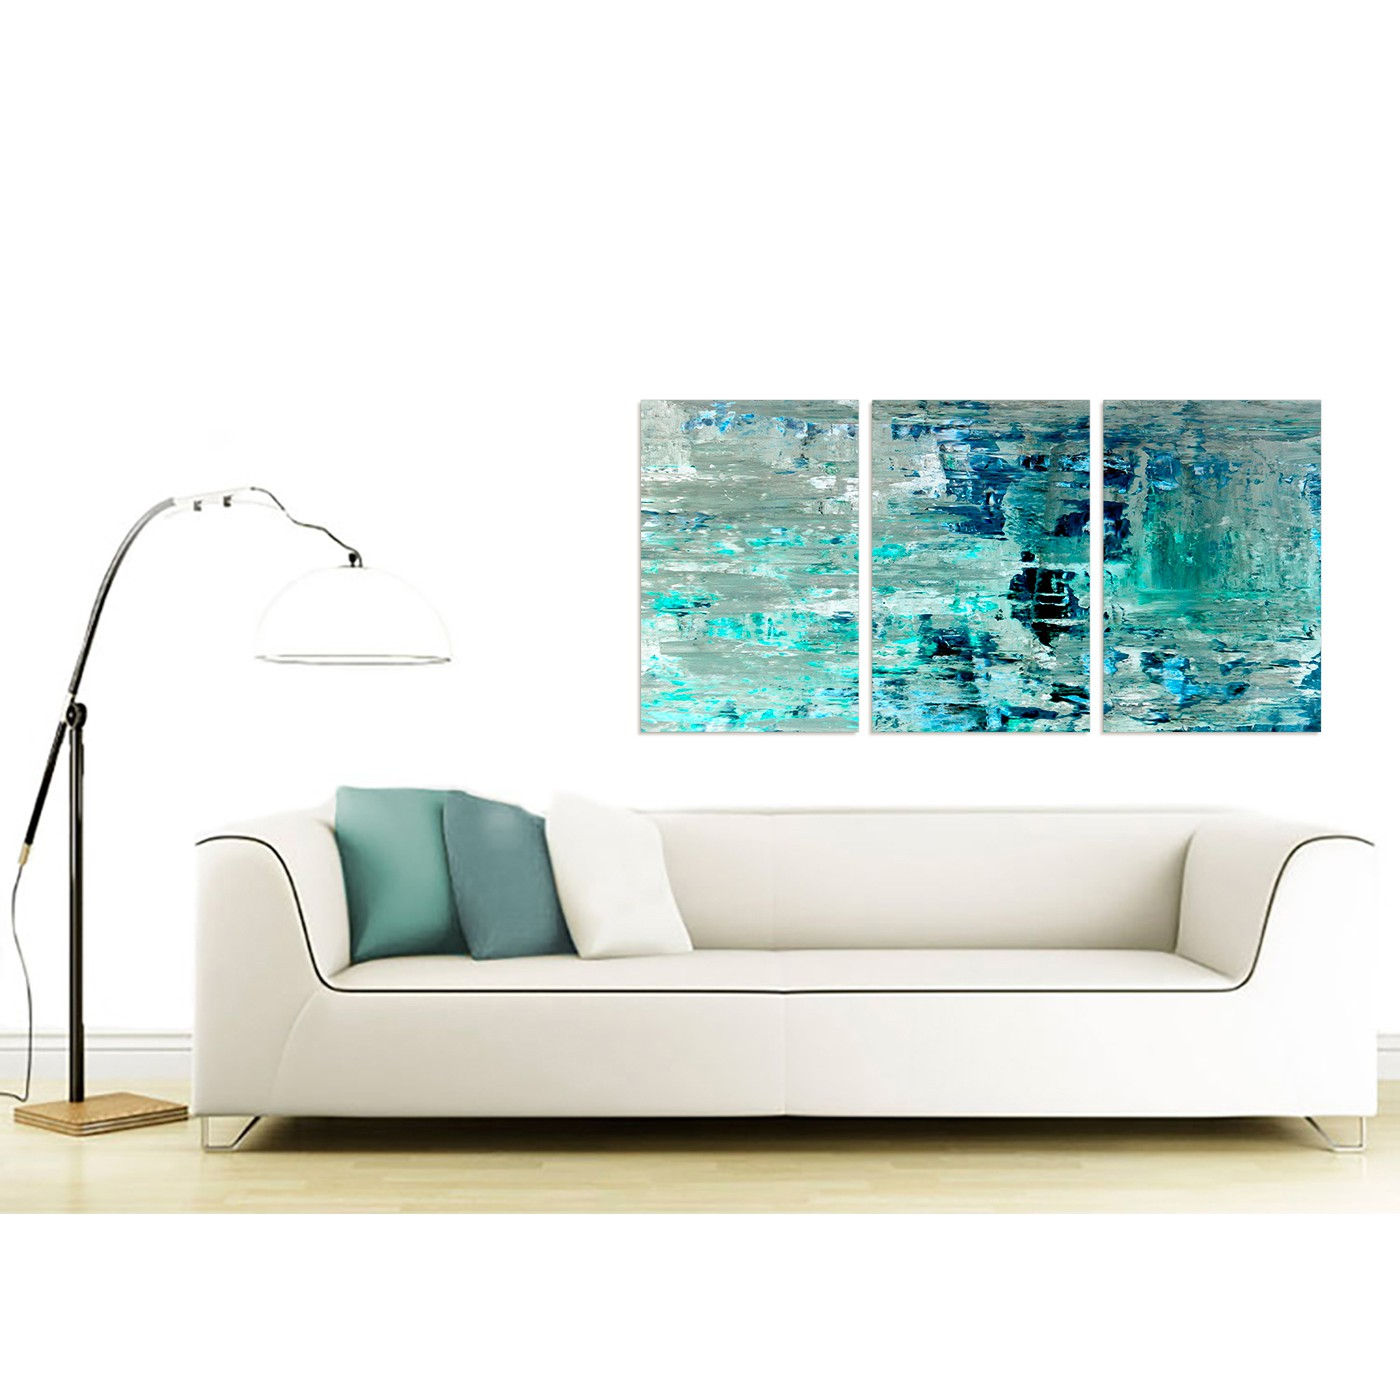 Turquoise Teal Abstract Painting Wall Art Print Canvas - Multi 3 ...